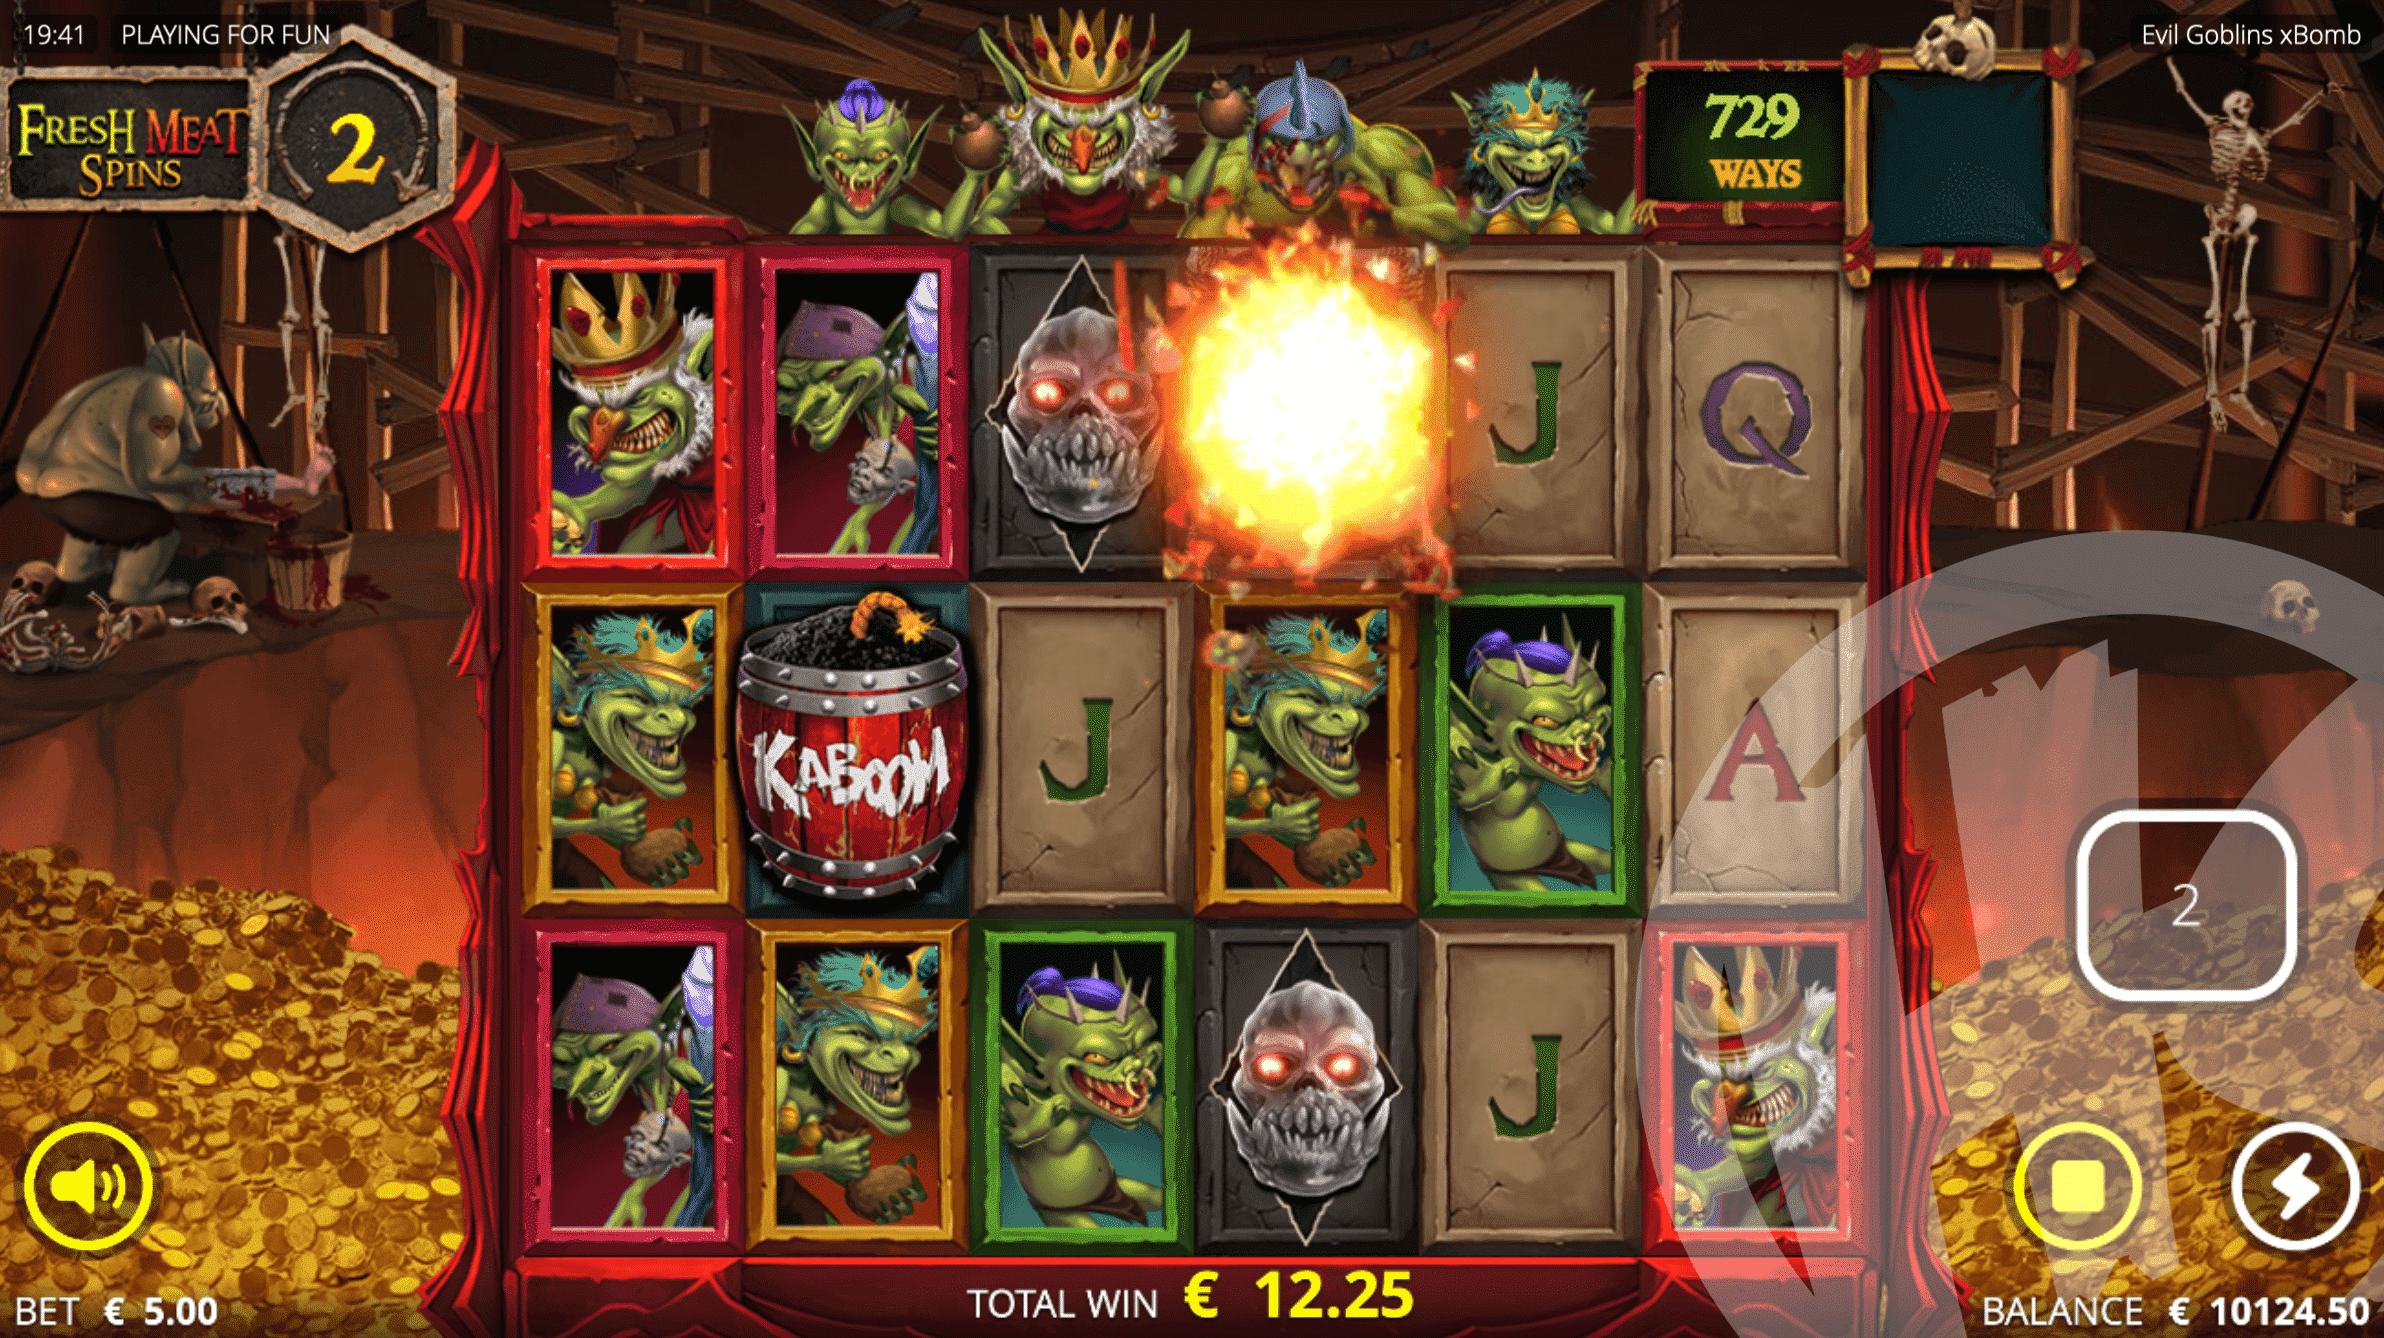 Evil Goblins xBomb Fresh Meat Spins